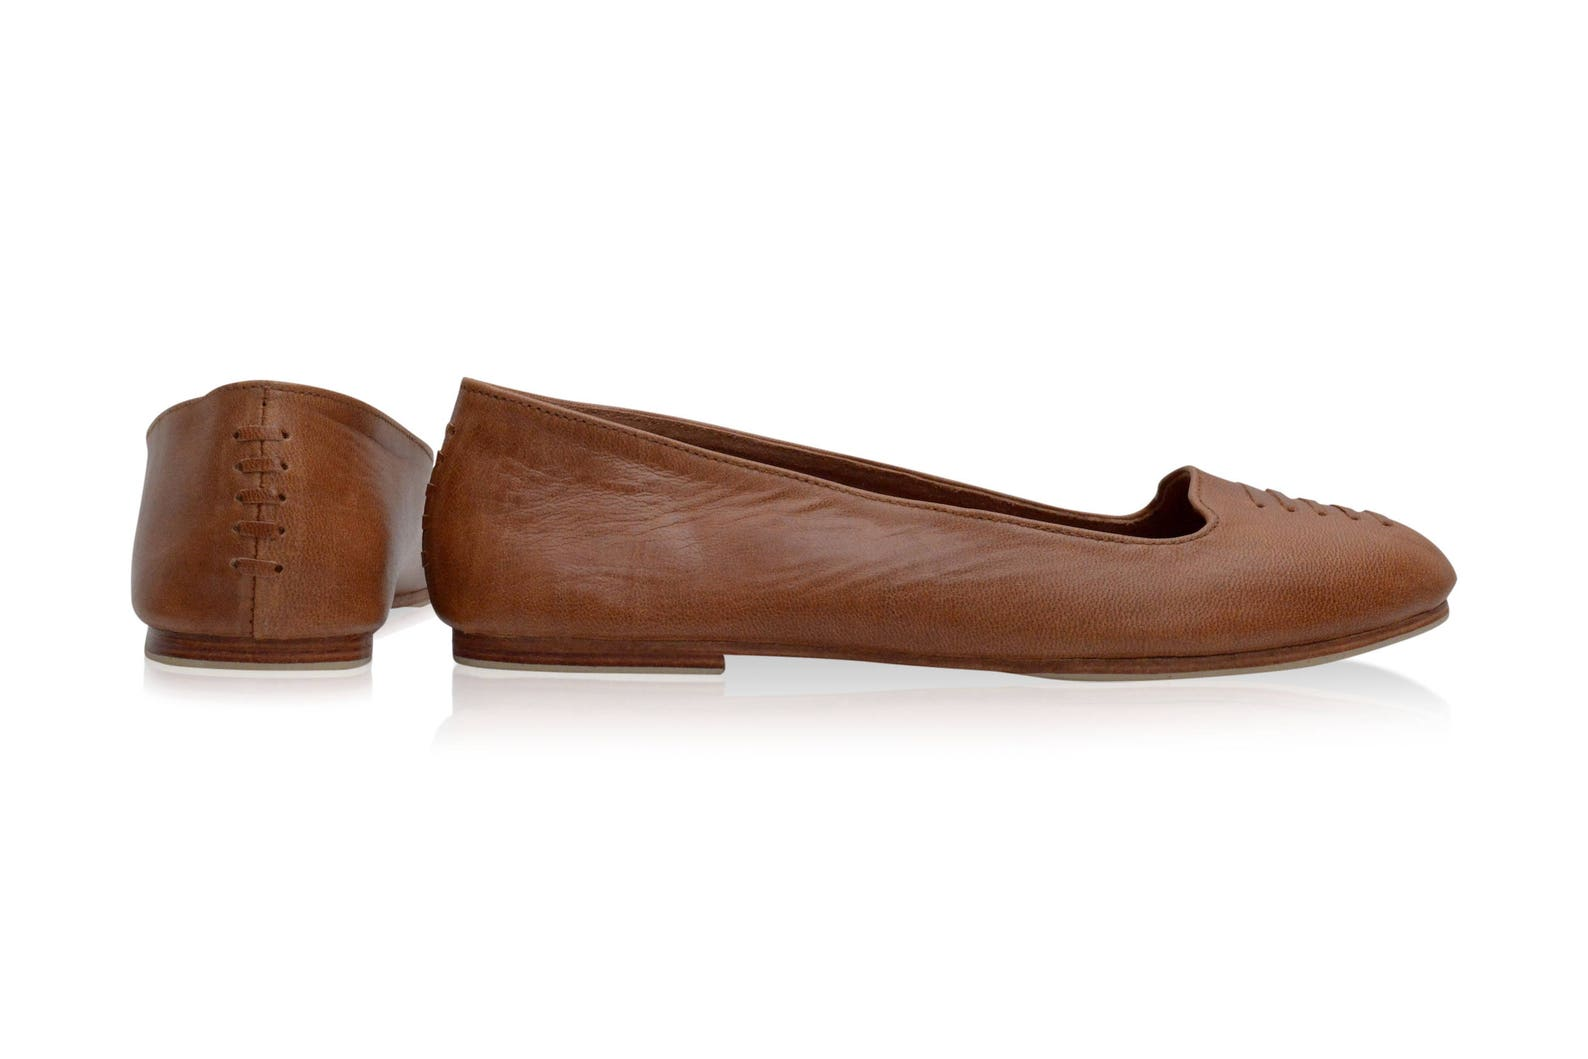 luna. brown leather shoes / women shoes / leather flat shoes/ women flats / leather ballet flats. sizes 35-43. available in diff